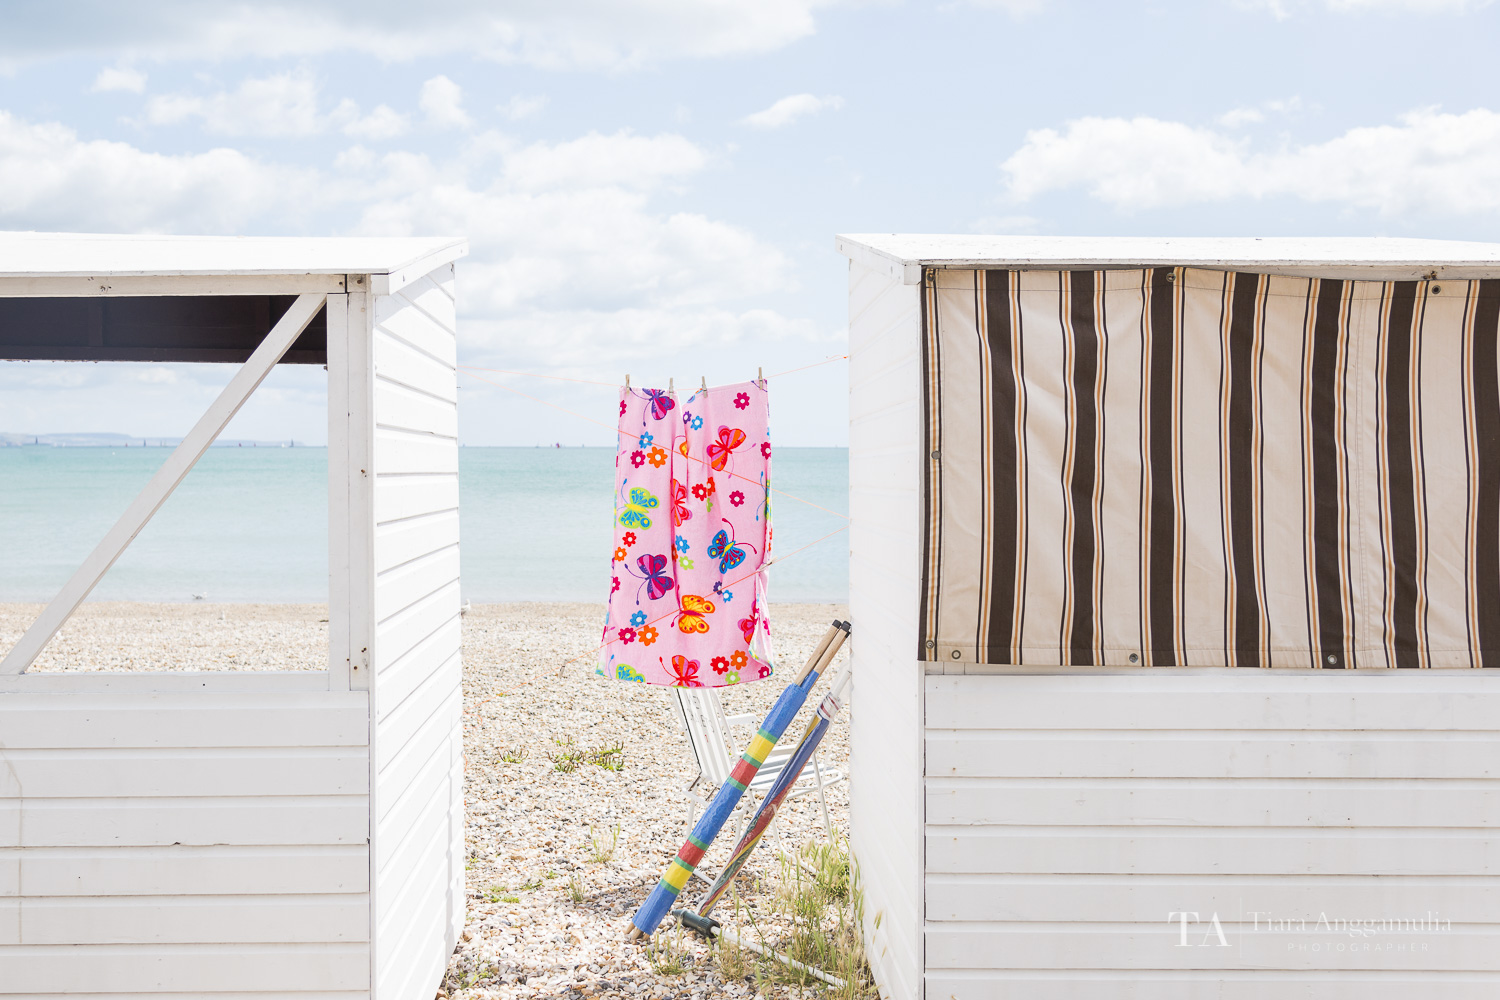 Chalets for hire on Weymouth's beachfront.